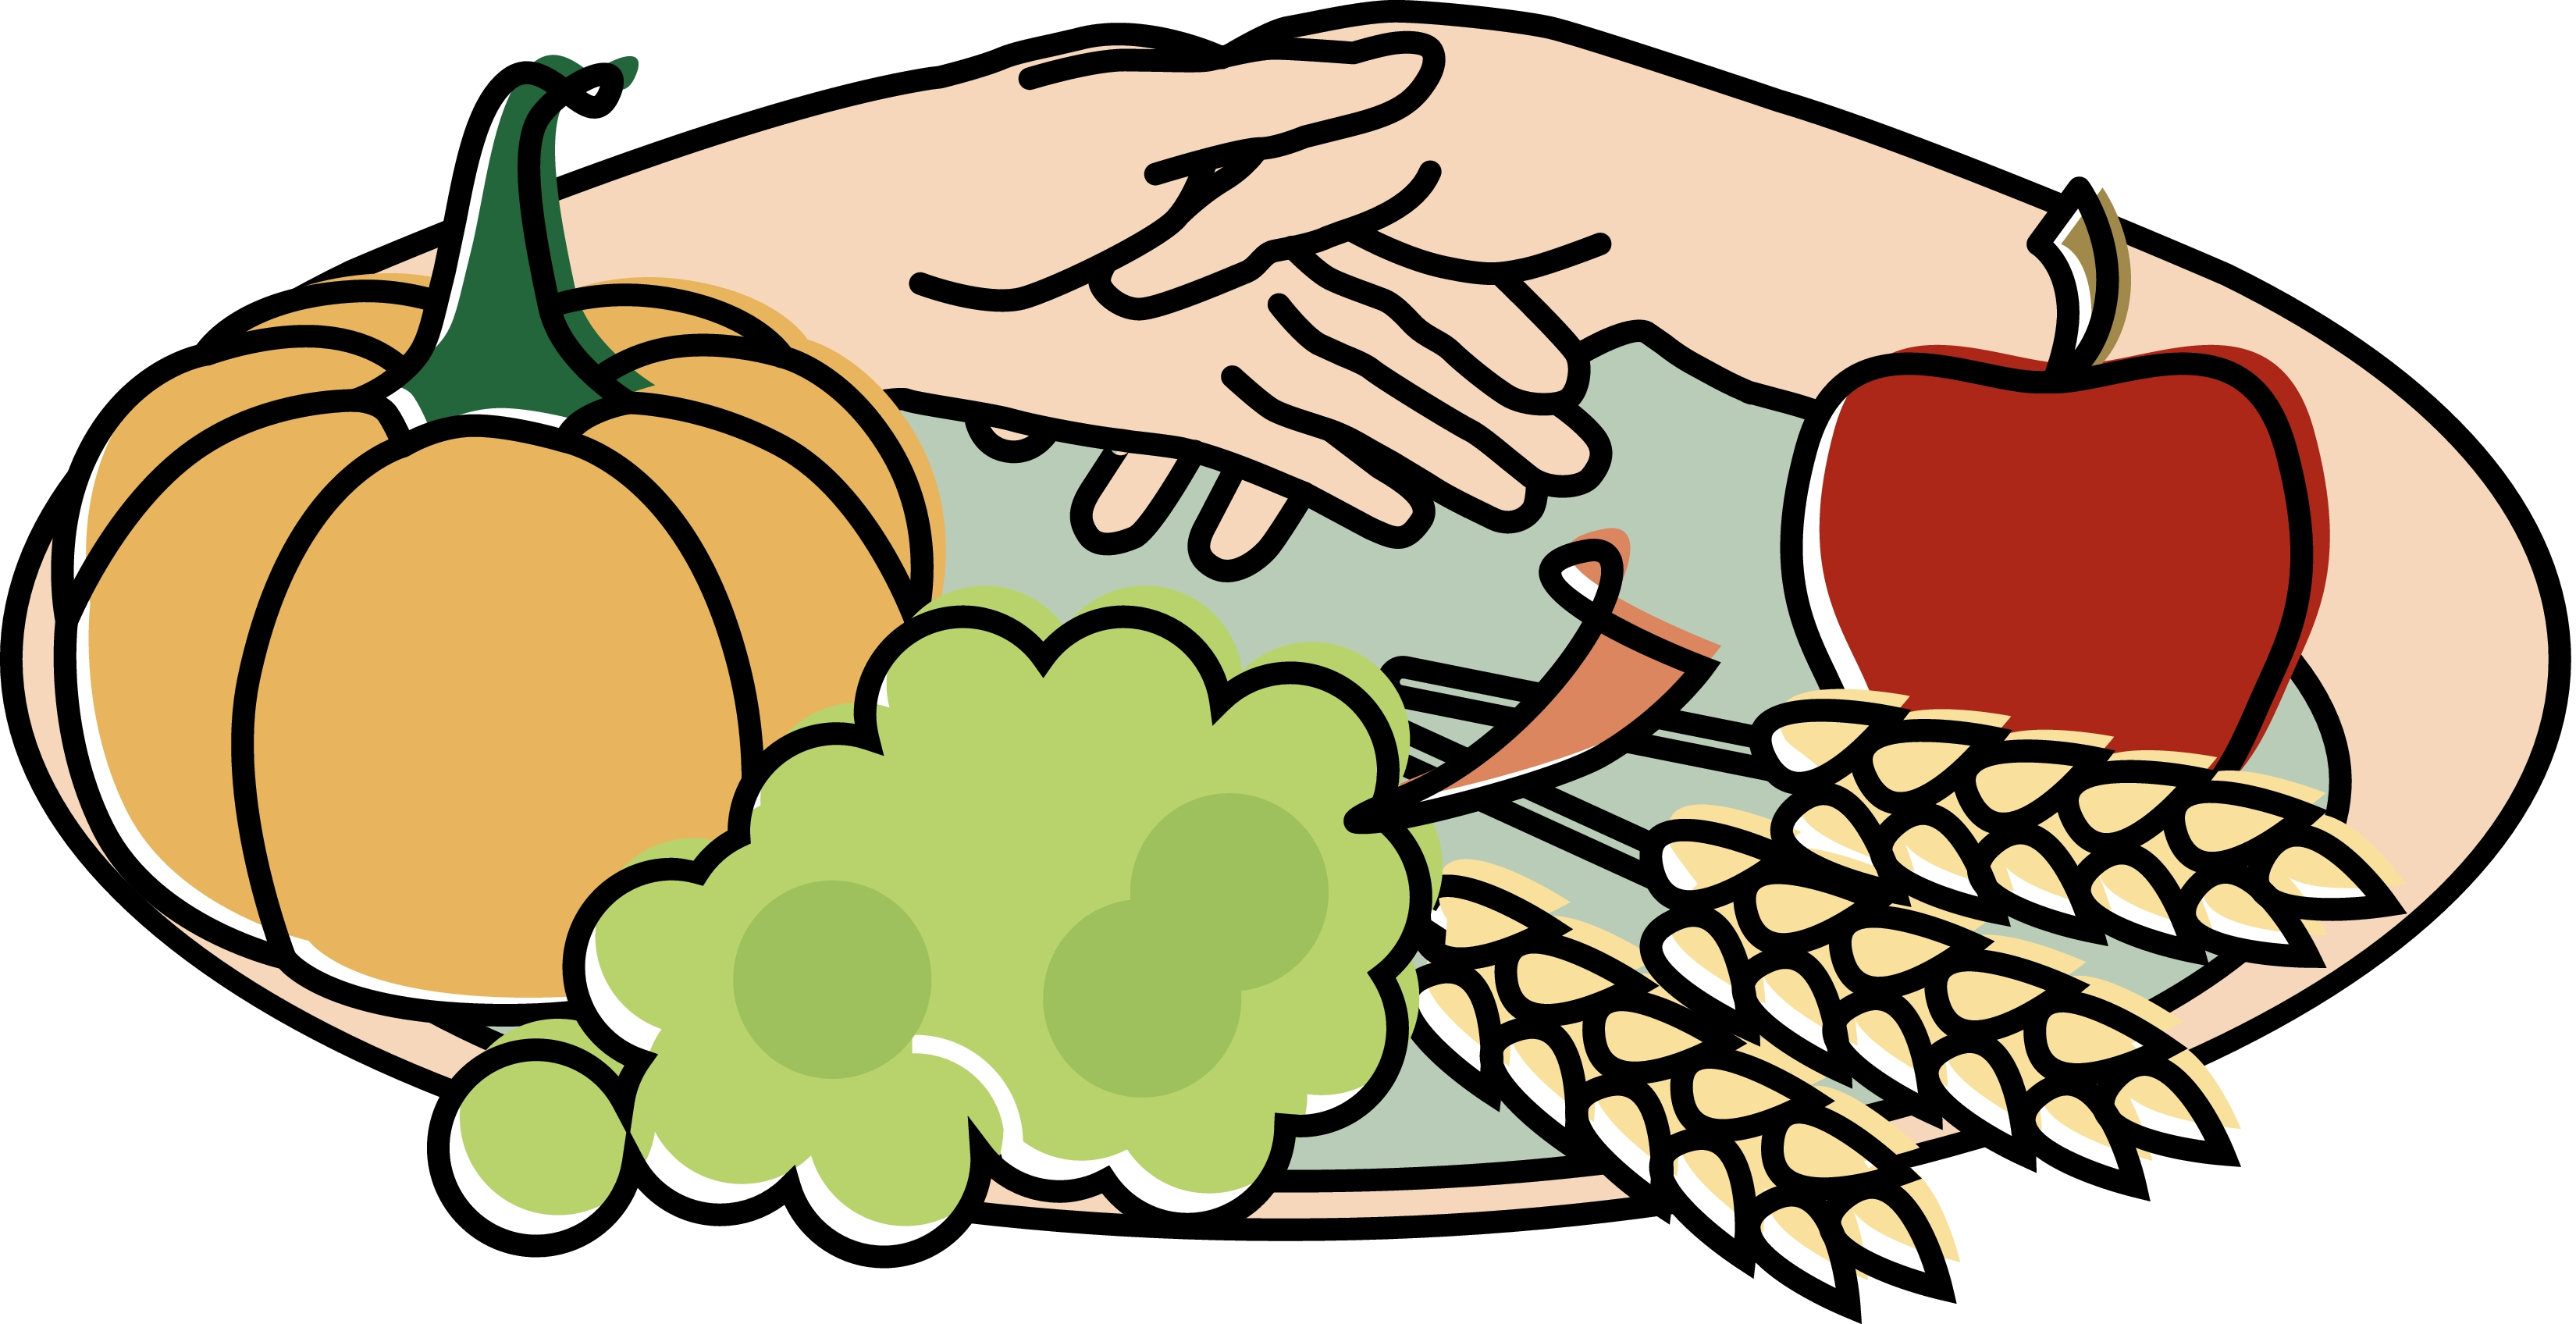 lunch food clipart 20 free Cliparts | Download images on ...